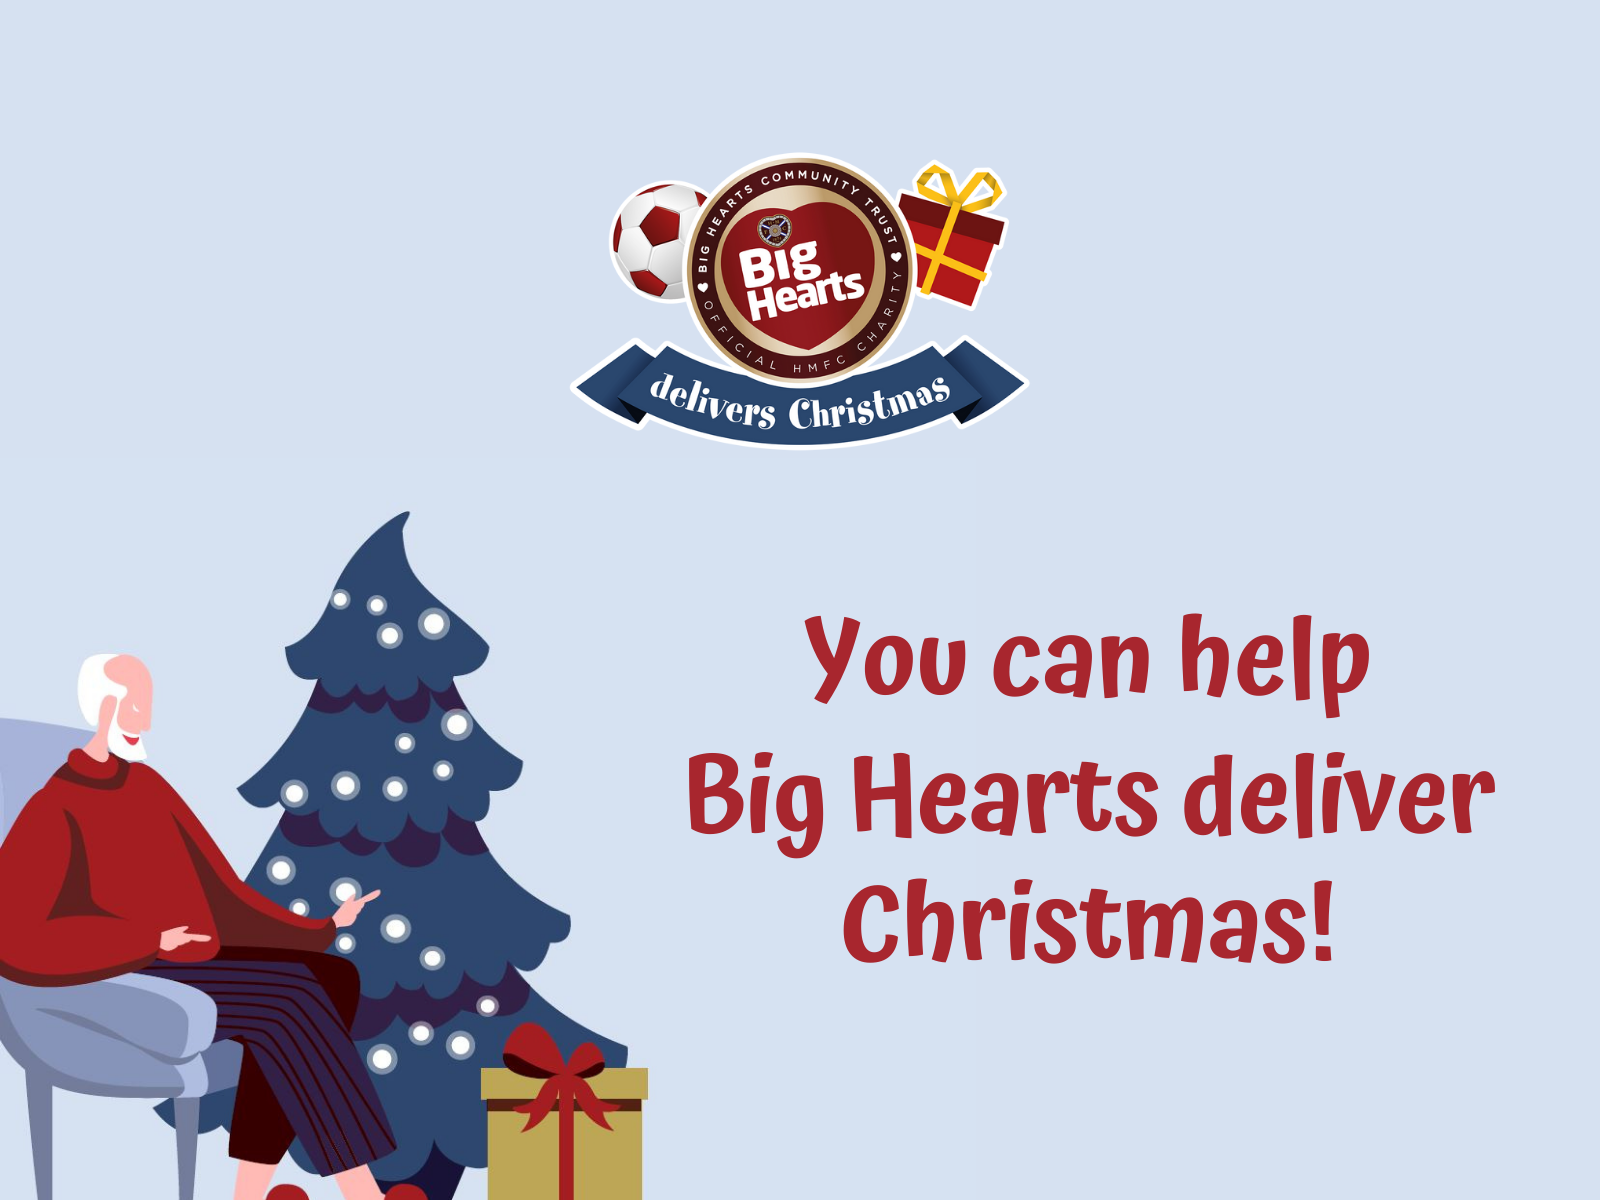 » THIS YEAR BIG HEARTS GOES ON THE ROAD TO DELIVER CHRISTMAS!